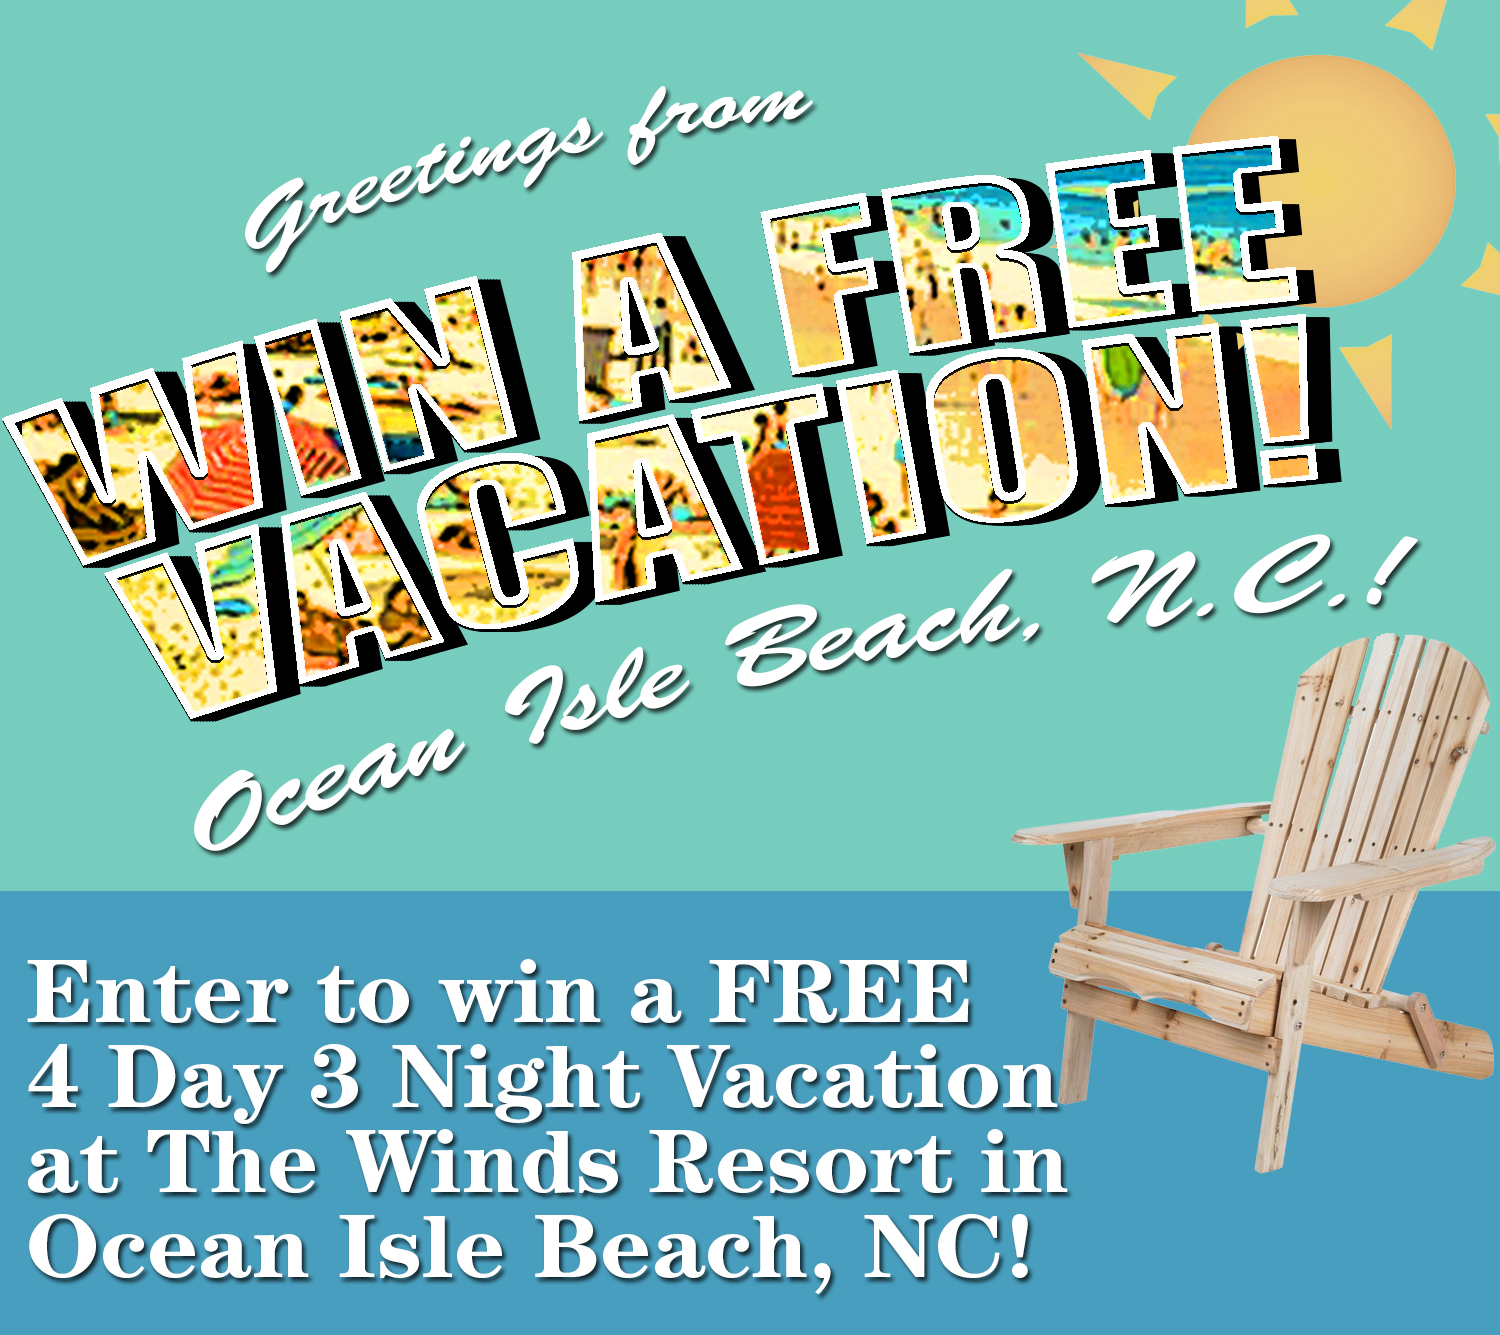 Enter to win a free vacation sunsetnc nvjuhfo Choice Image